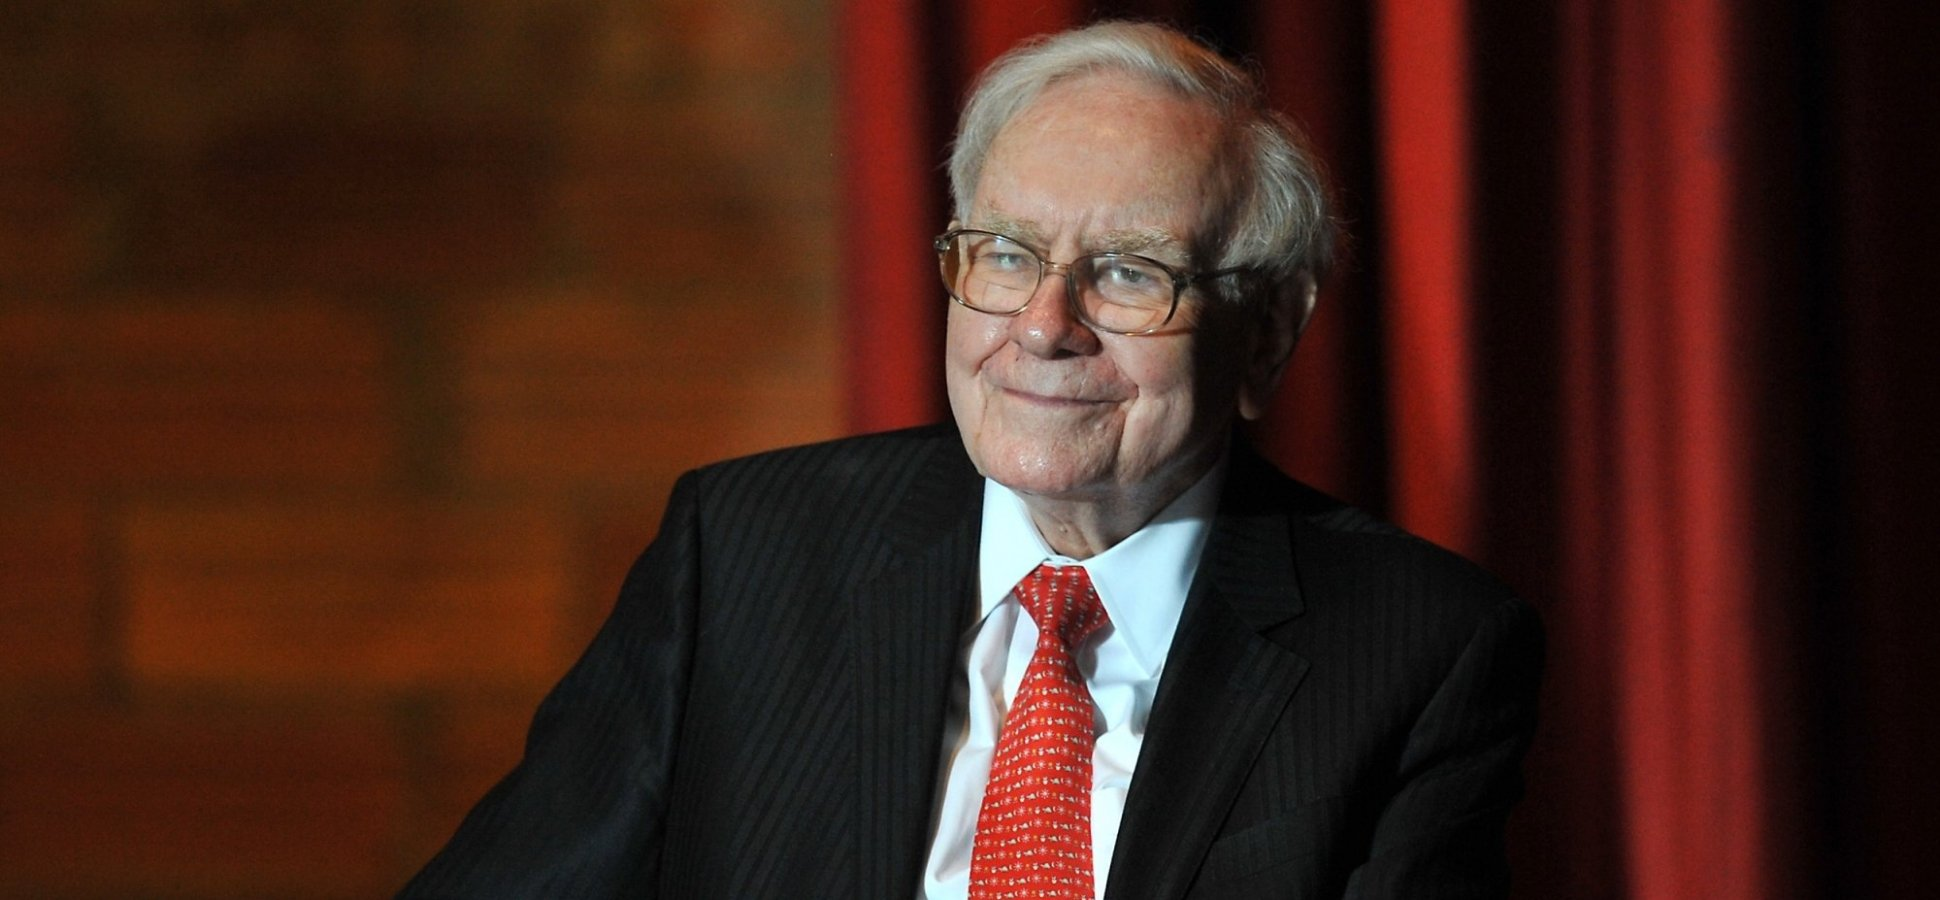 Warren Buffett Says All Successful People Have This 1 Rare Thing in Common